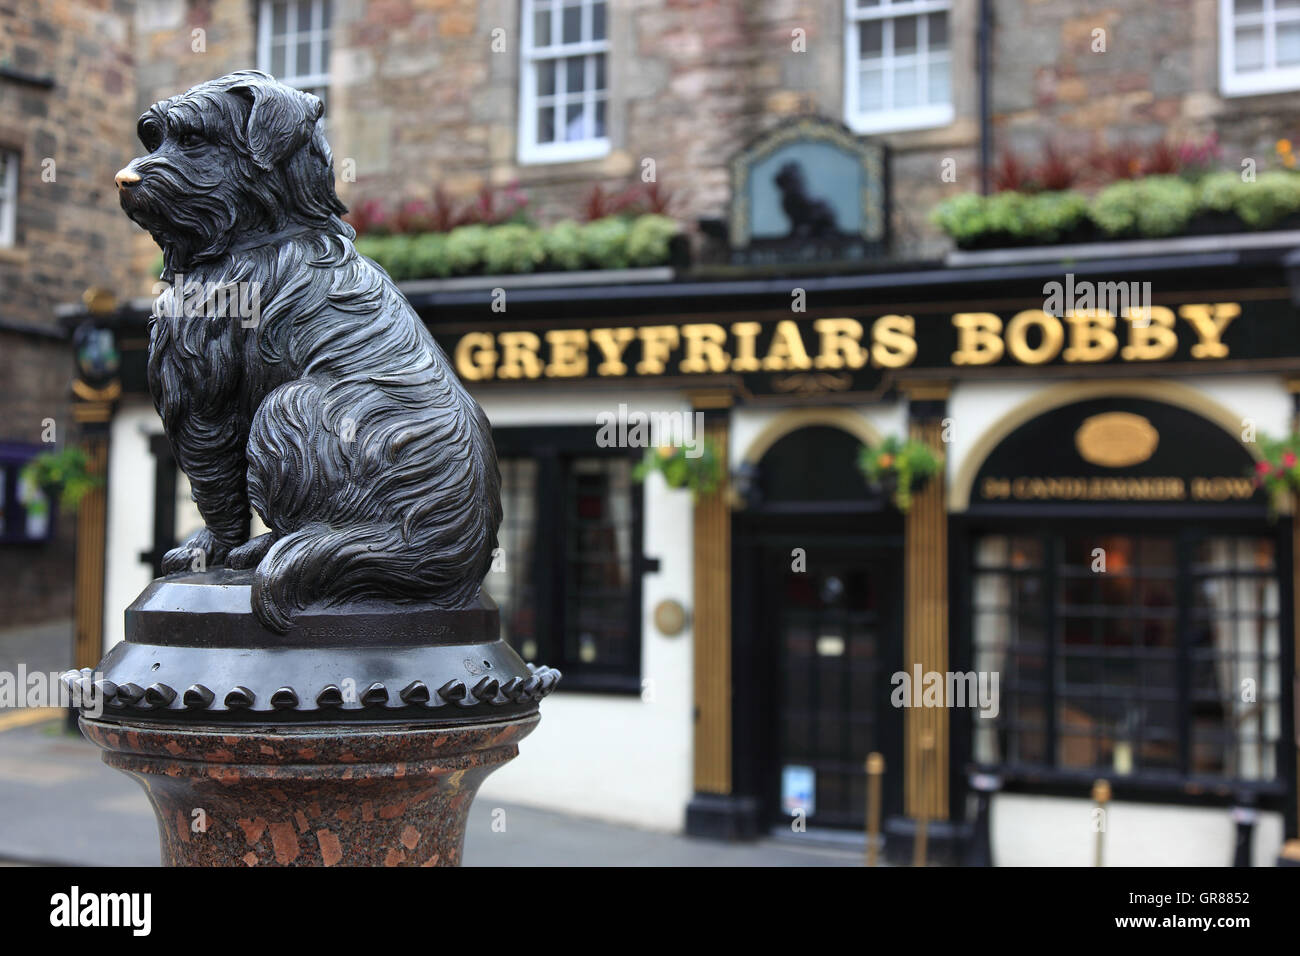 Scotland, Edinburgh, Old Town, Scottisher pub, full-size statue of Greyfriars Bobby, monument of the loyal dog before - Stock Image